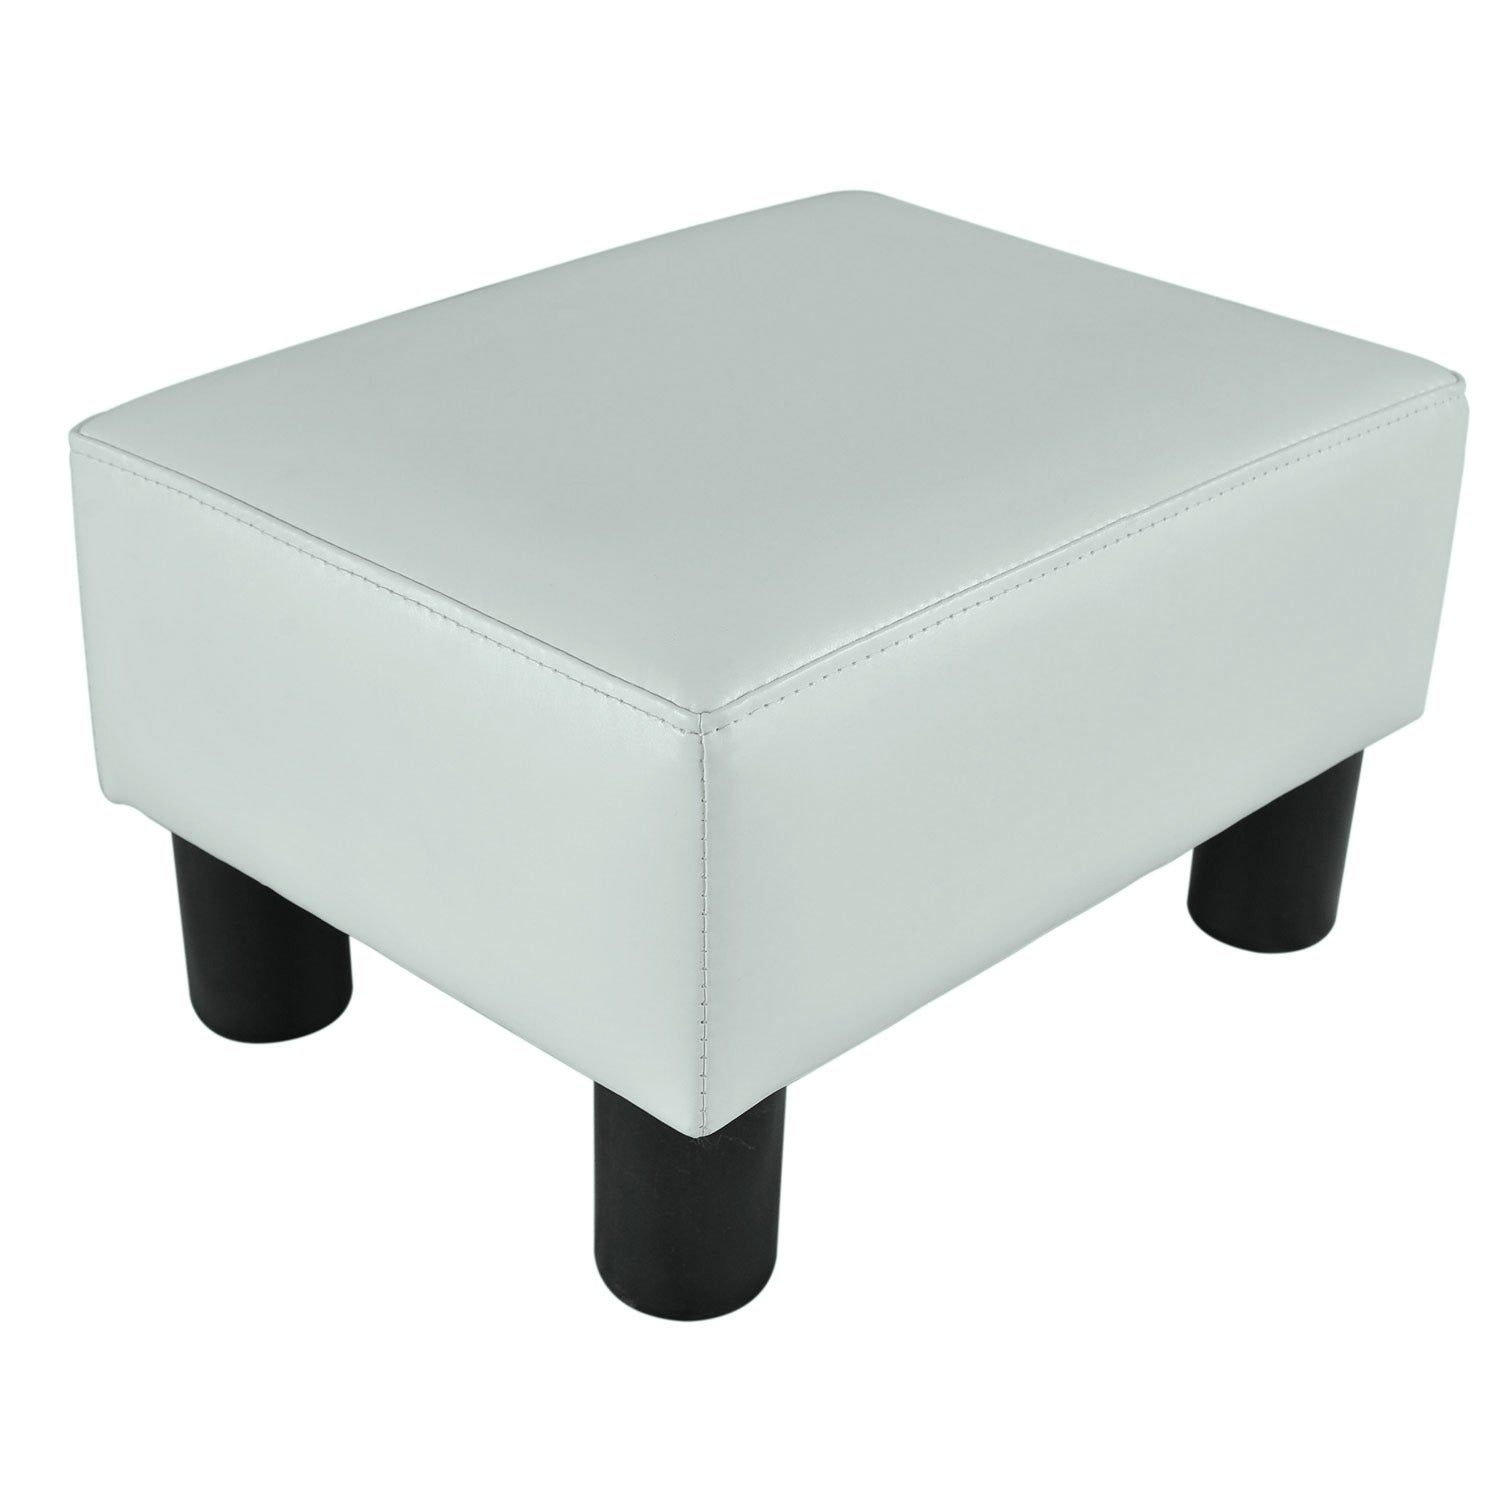 Shop porch den meadow modern small white faux leather ottoman footrest stool free shipping on orders over 45 overstock com 22580929